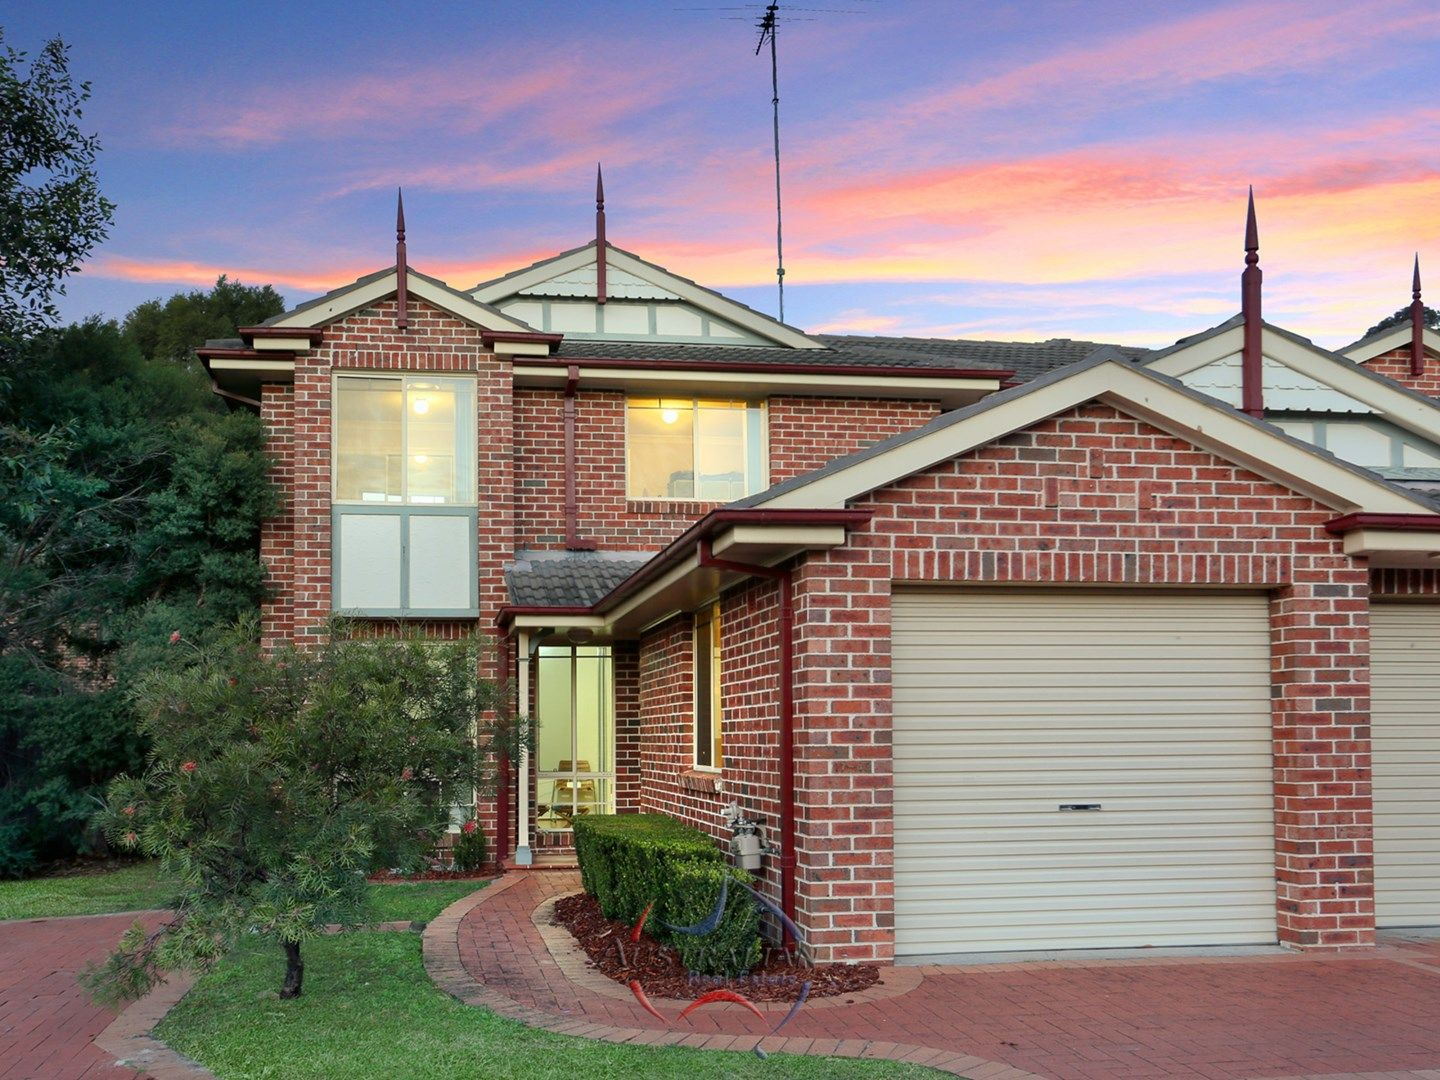 17/40 Highfield Road, Quakers Hill NSW 2763, Image 0